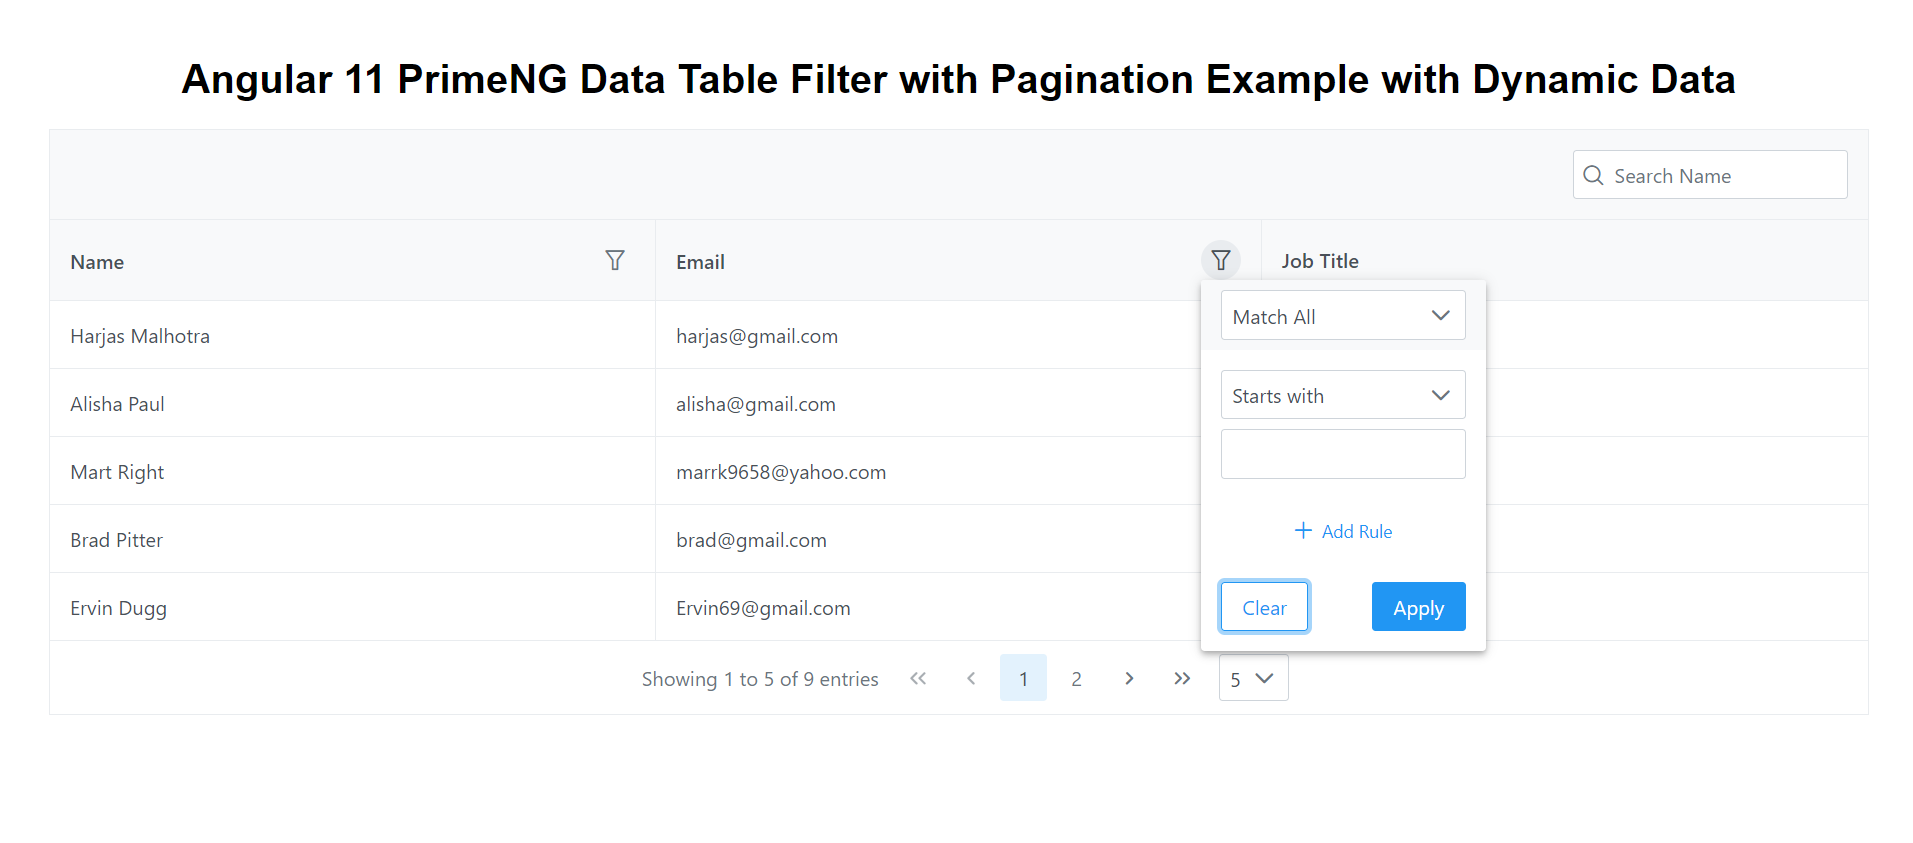 Angular 11 PrimeNG Data Table Filter Pagination Working Example with Dynamic Data